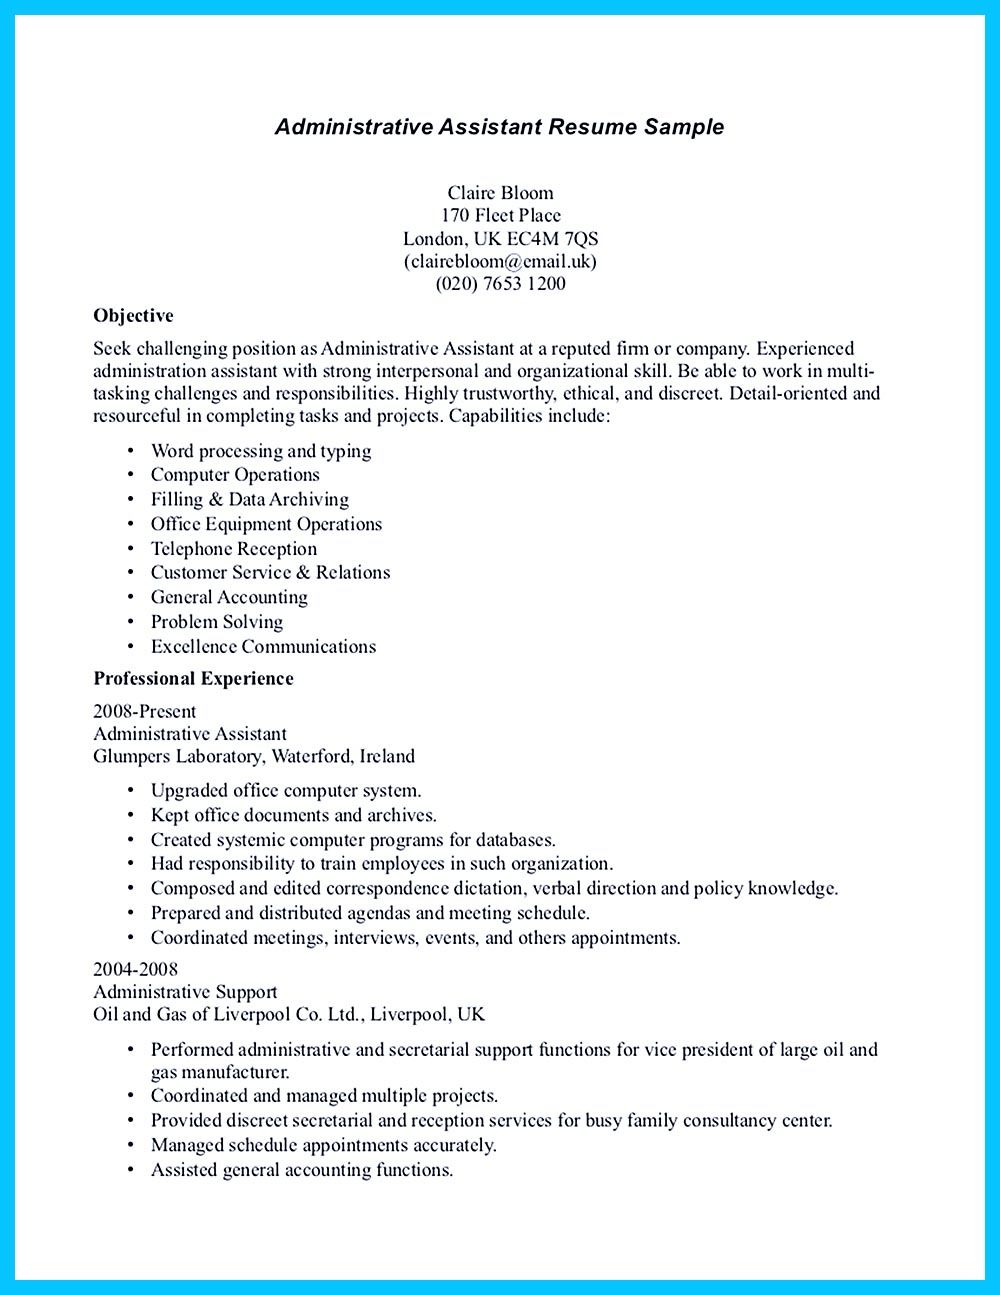 Cover Letter For Job Application For Administrative Assistant